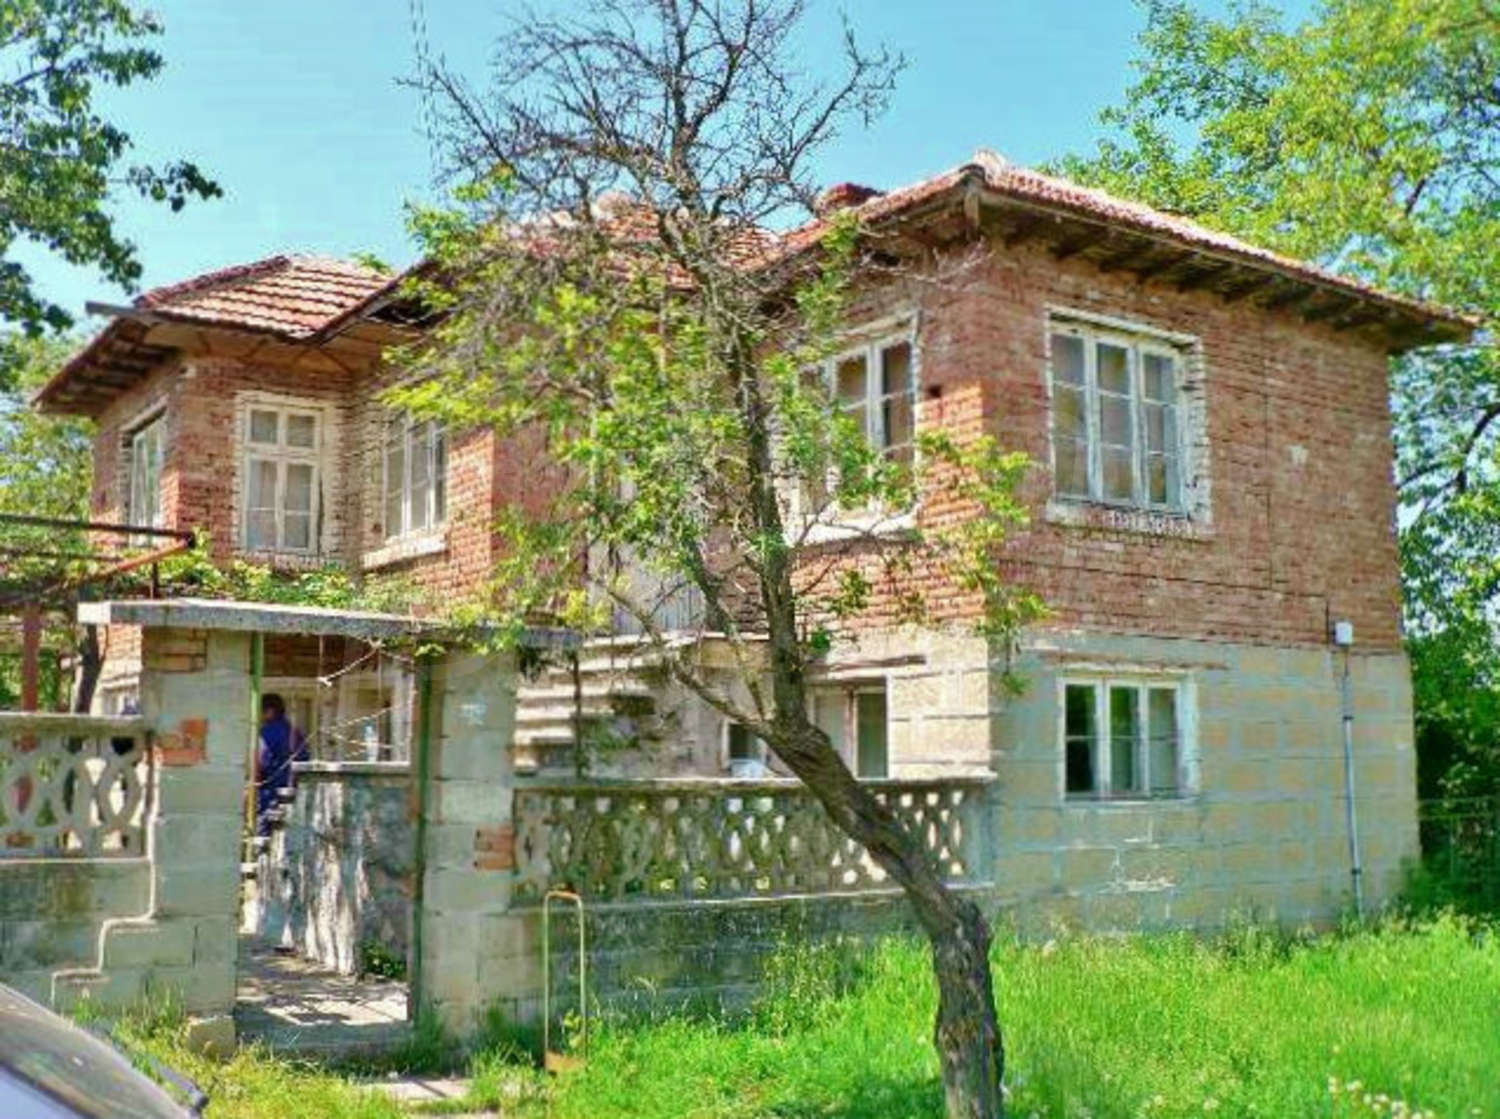 House for sale in barzitsa bulgaria two storey house for 2 storey house for sale